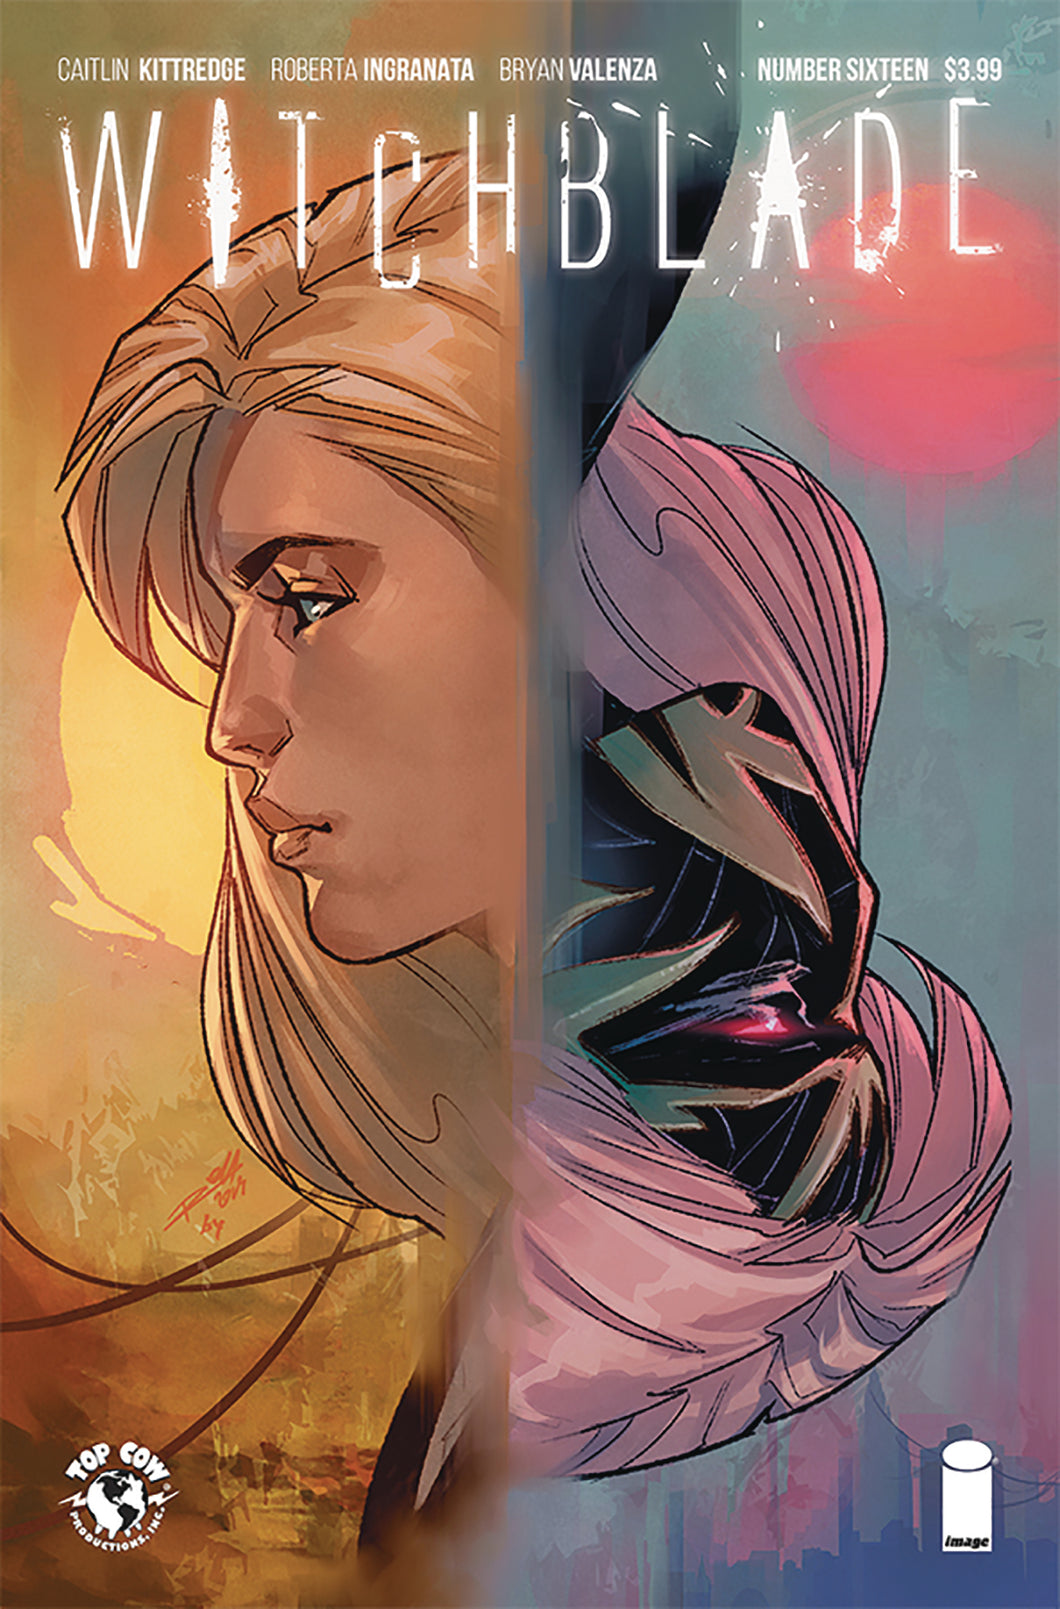 WITCHBLADE #16 (MR)